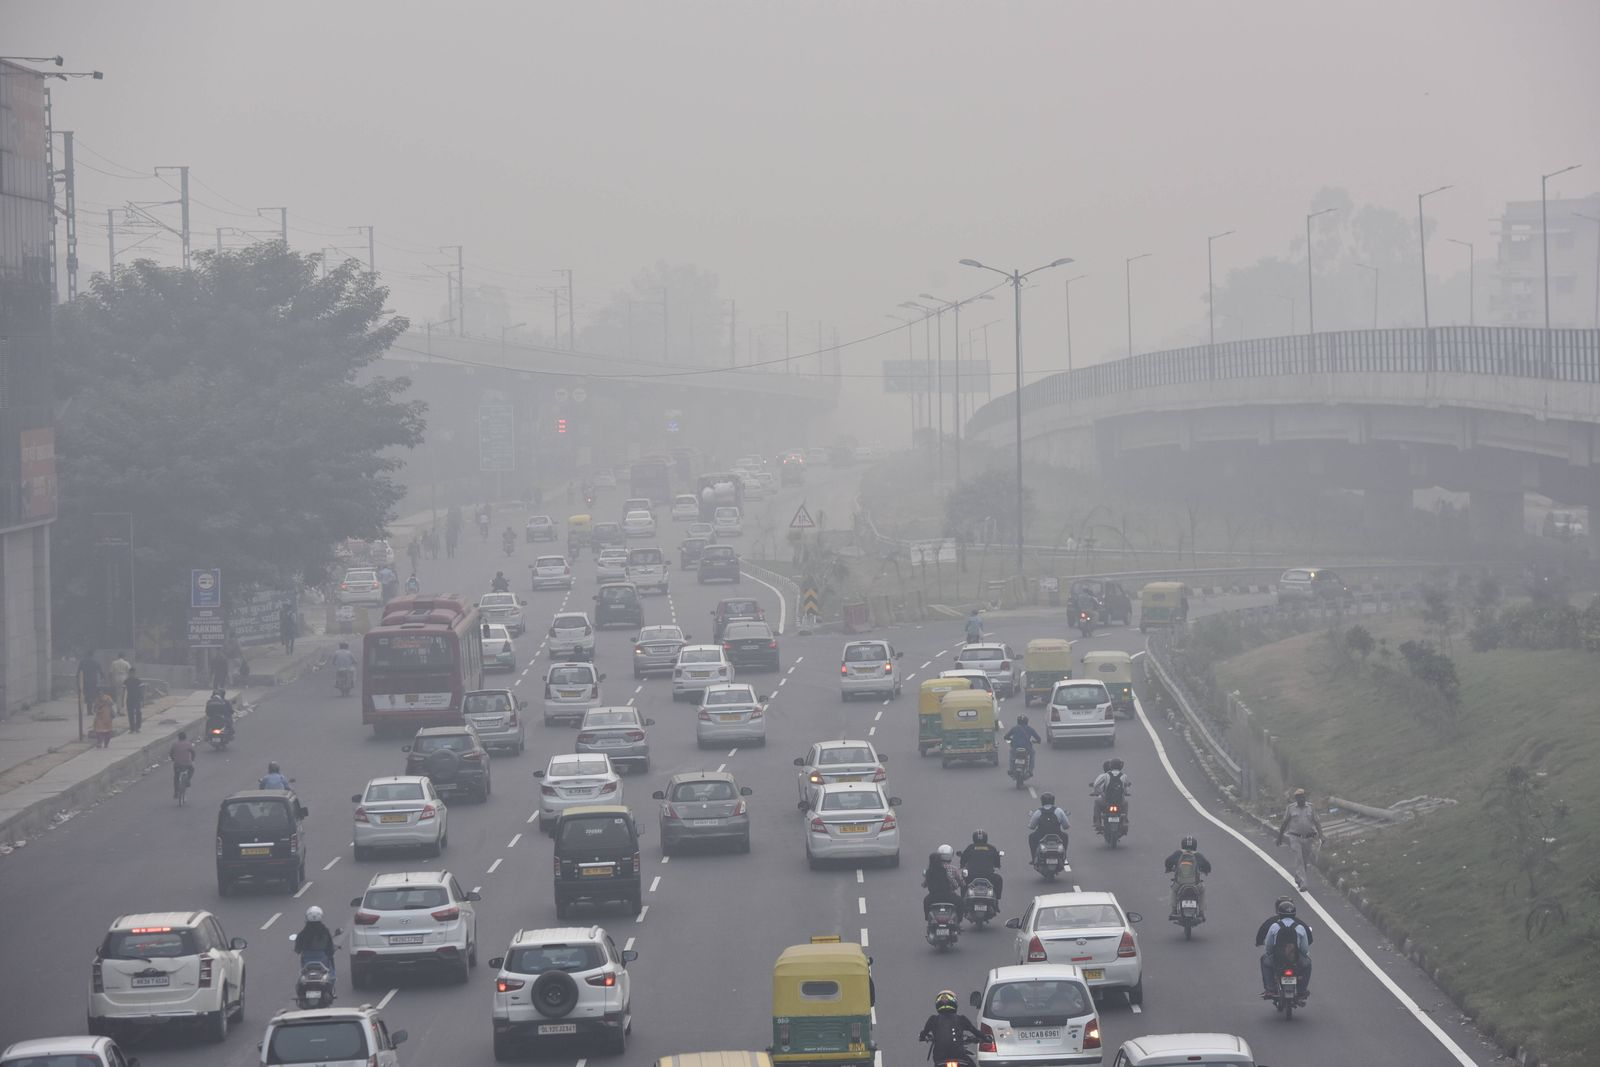 NEW DELHI, INDIA - OCTOBER 31: Vehicular traffic seen near Dhaula Kuan metro station amid dense smog on October 31, 2019